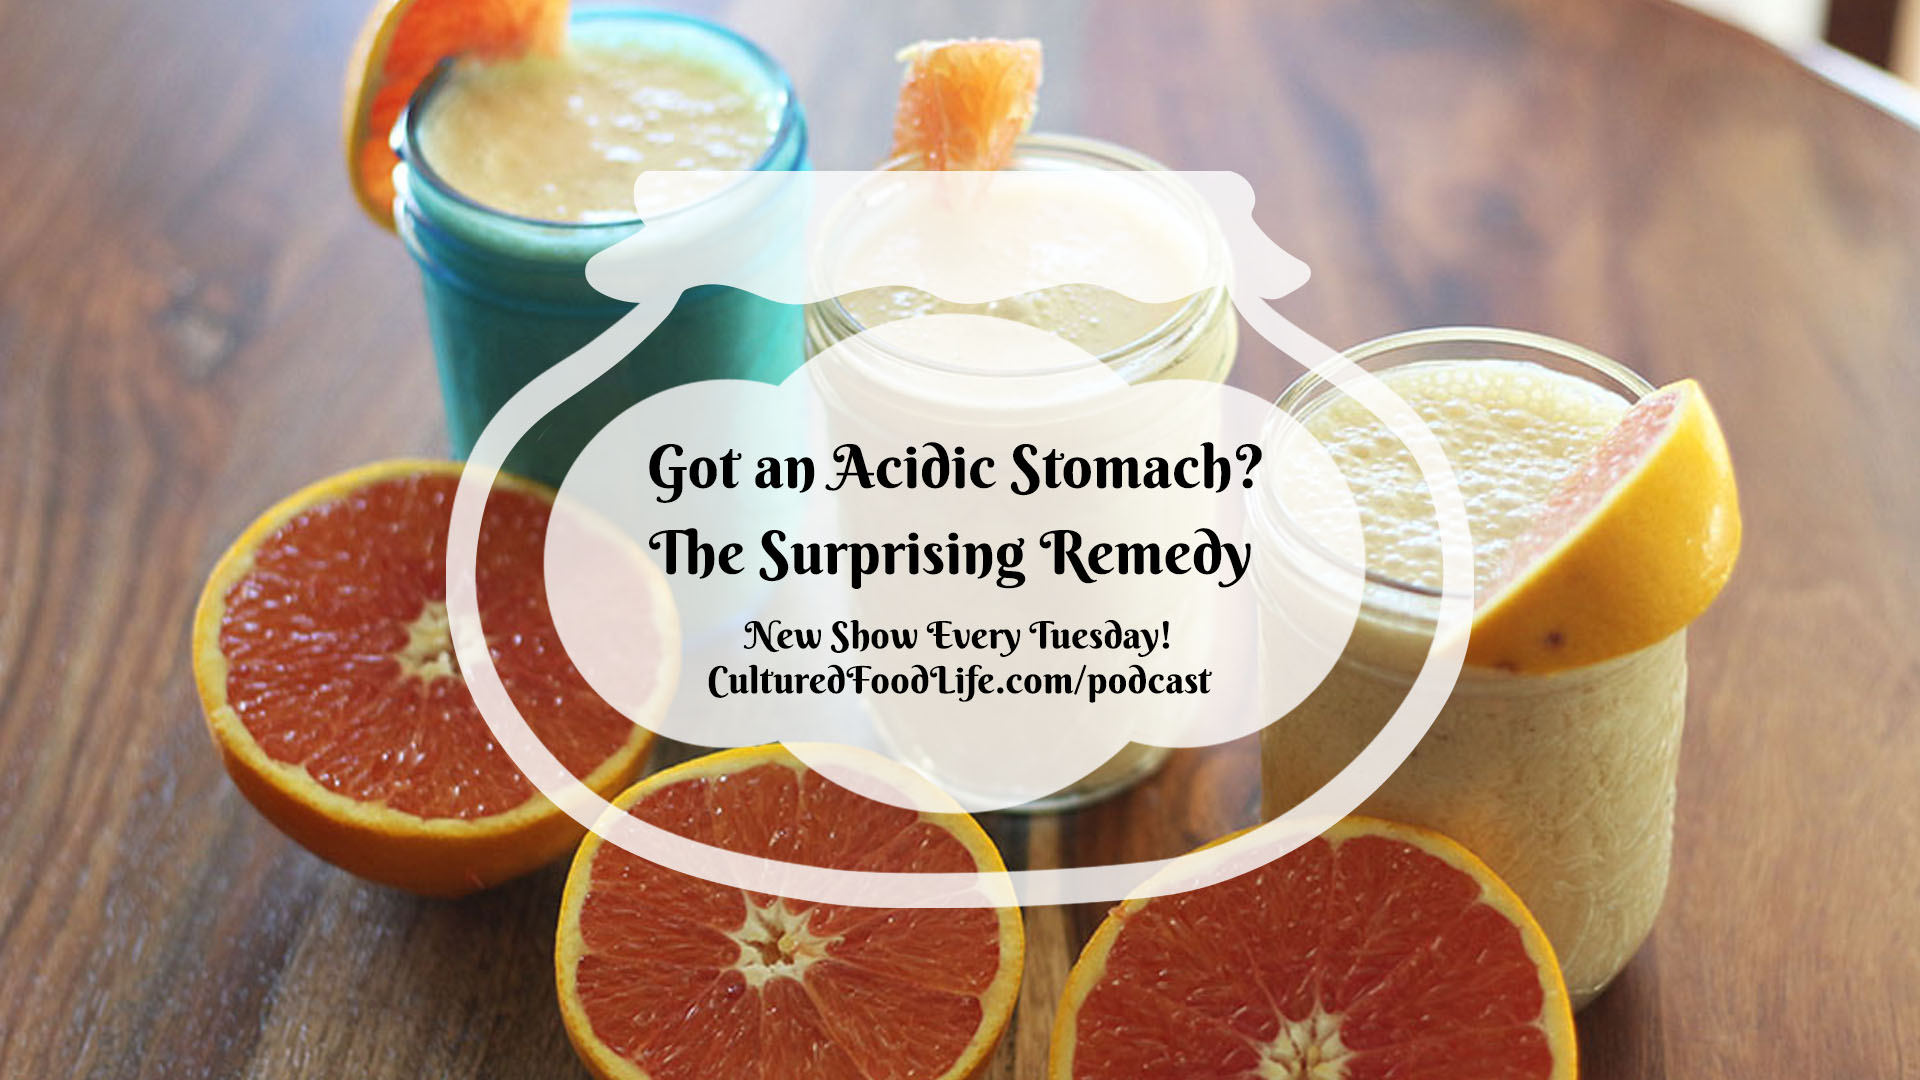 Got an Acidic Stomach? The Surprising Remedy Full